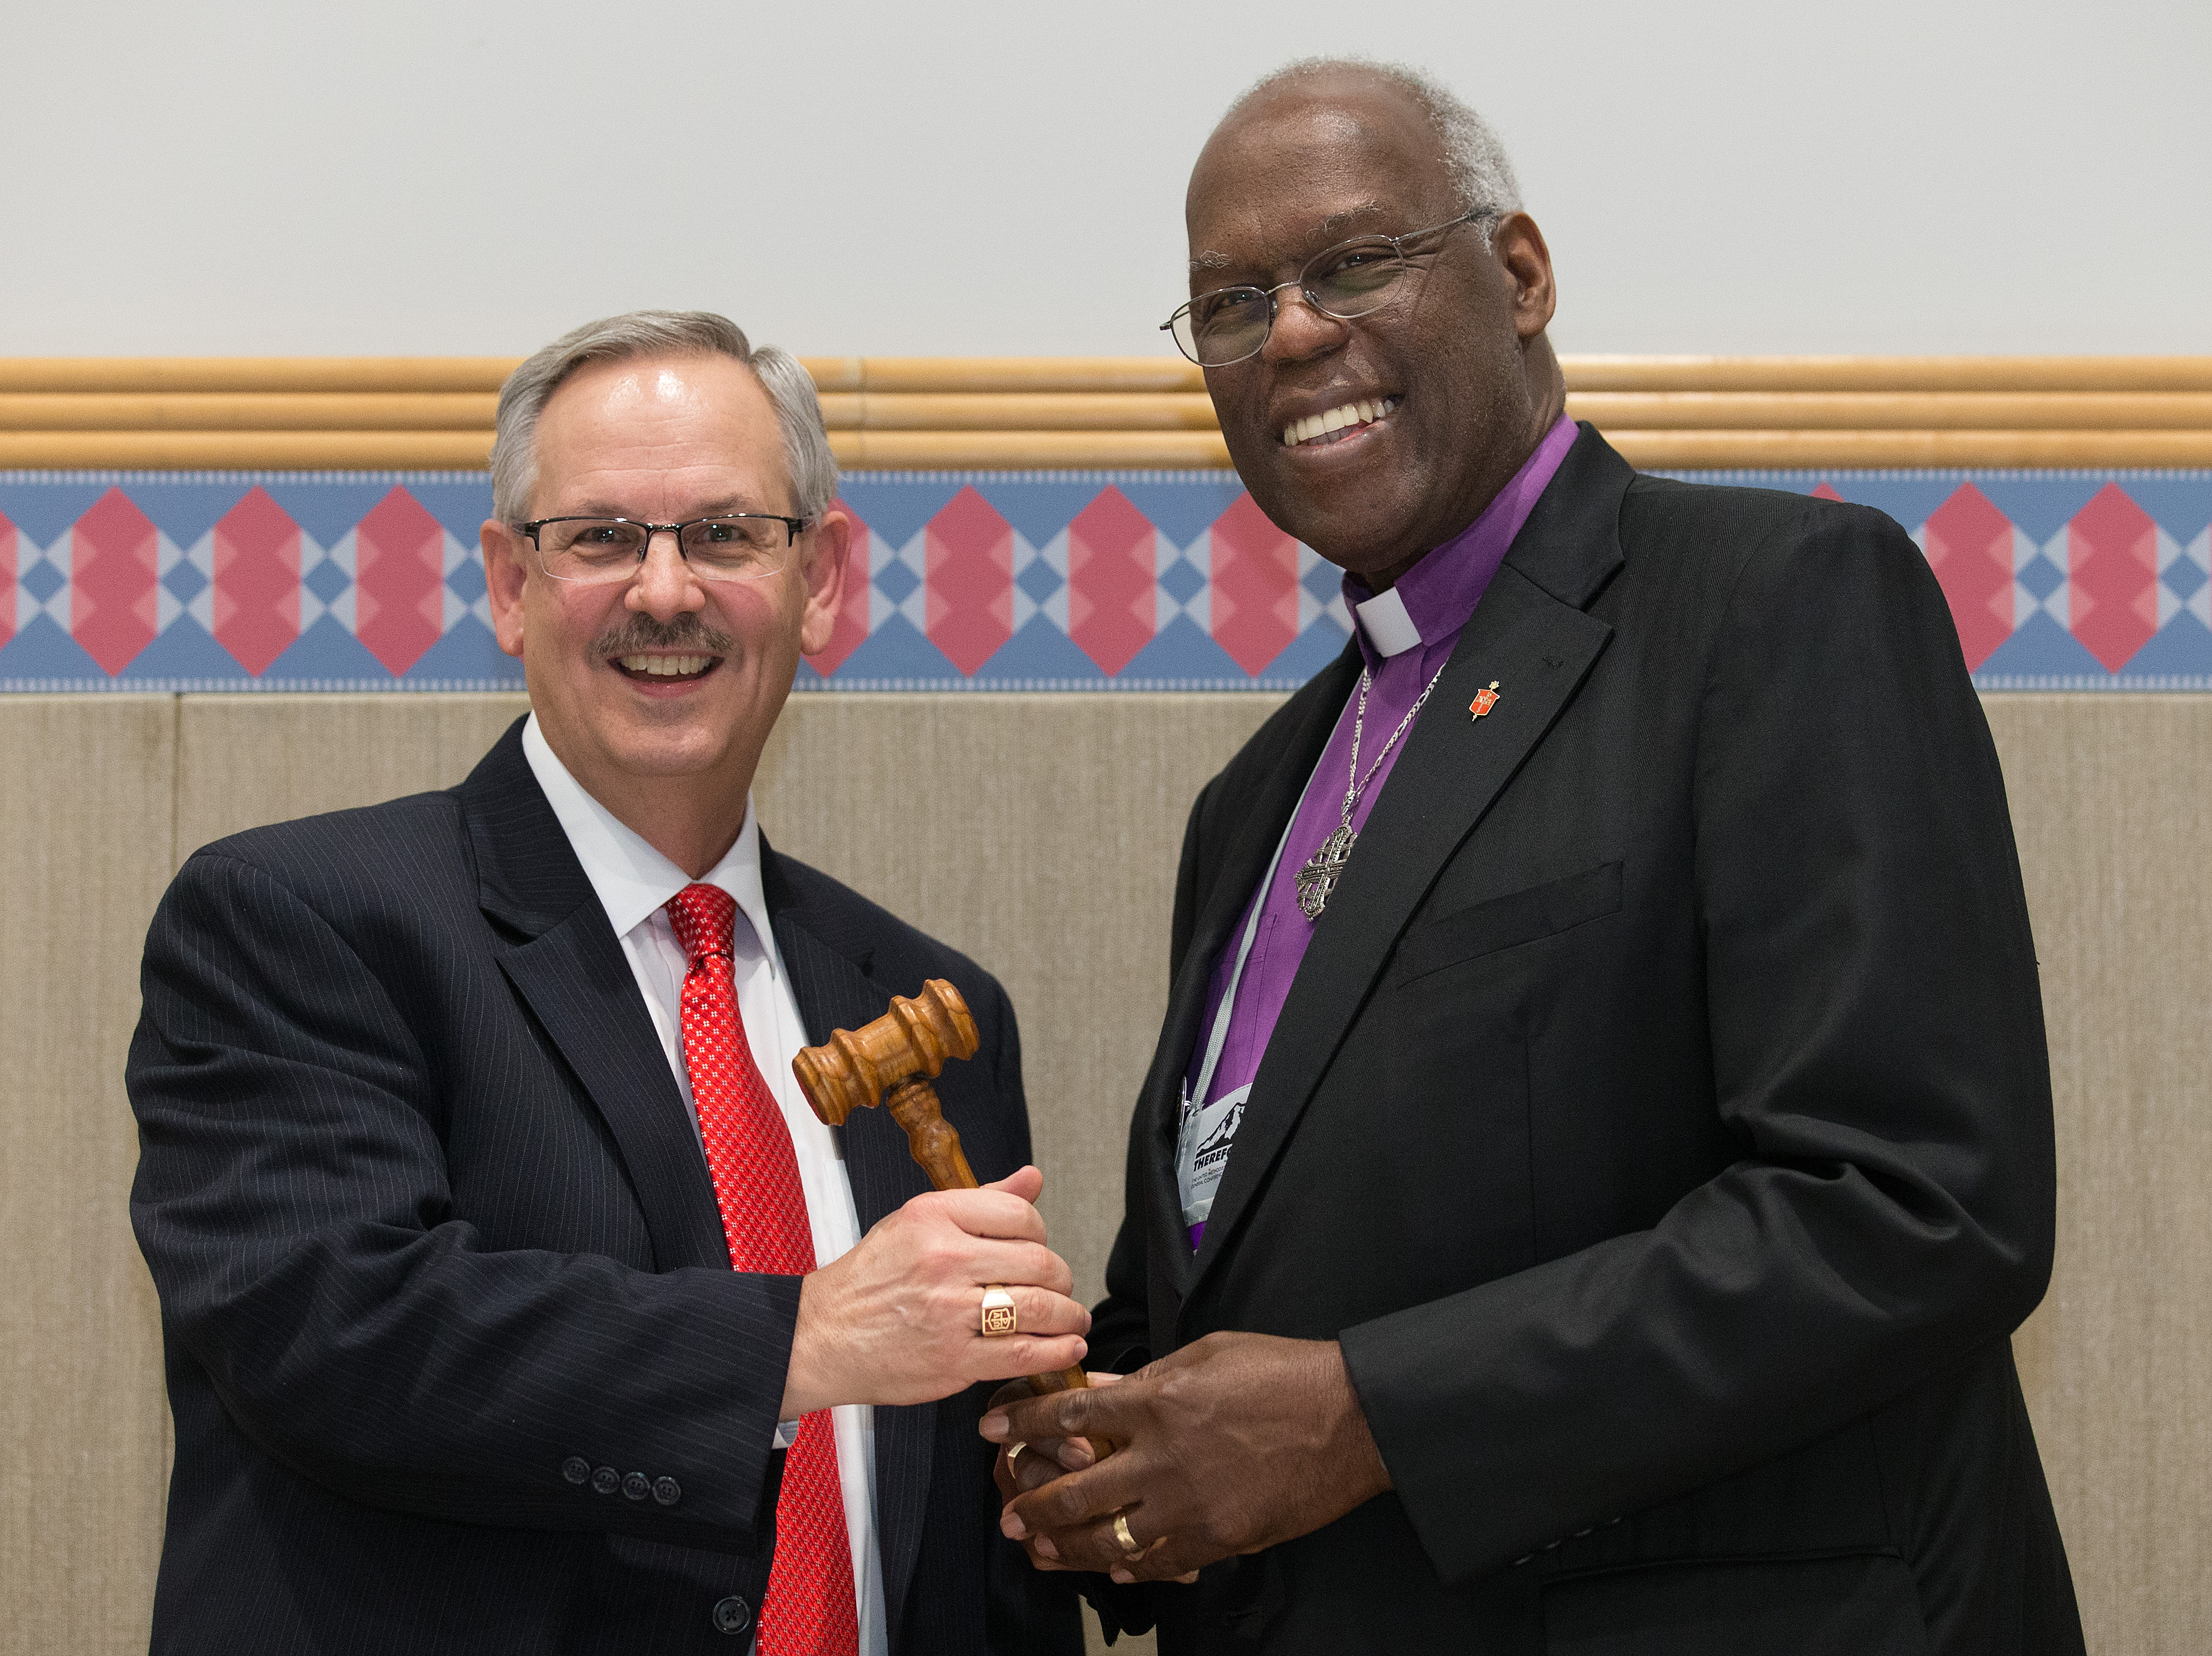 Bishop Bruce R. Ough (left) receives the gavel as incoming president of the United Methodist Council of Bishops from outgoing president Warner H. Brown, Jr. during the 2016 General Conference in Portland, Ore. Photo by Mike DuBose, UMNS